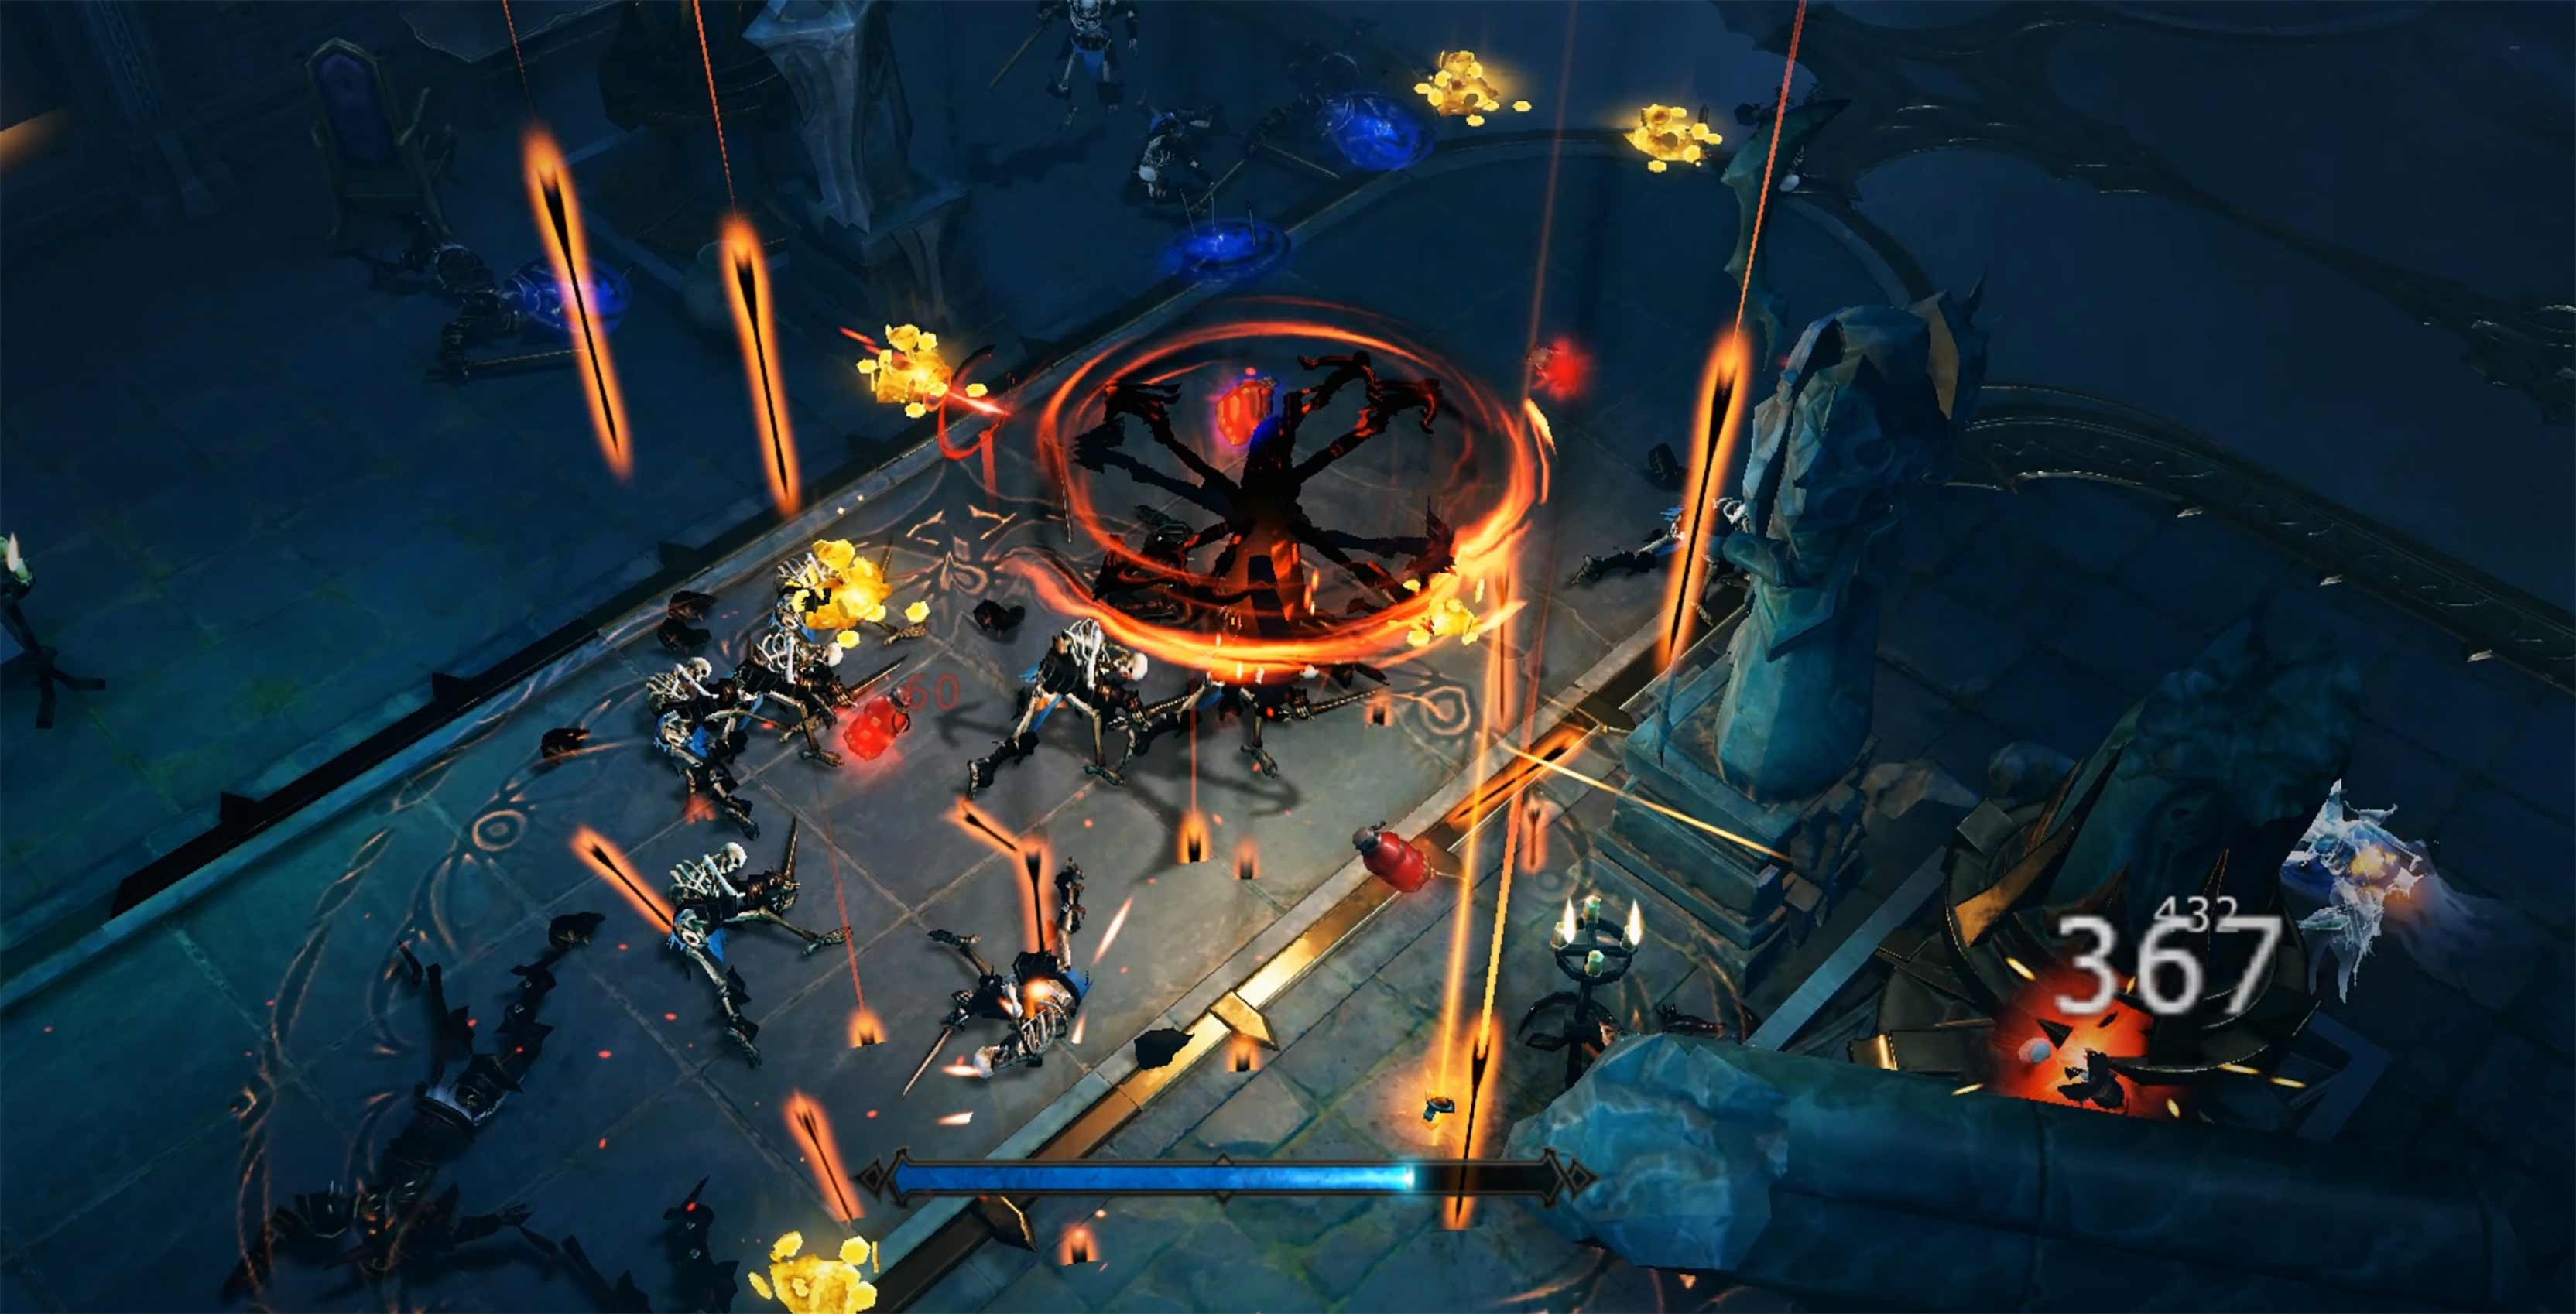 Blizzard Announces Diablo Immortal, A Mobile Game